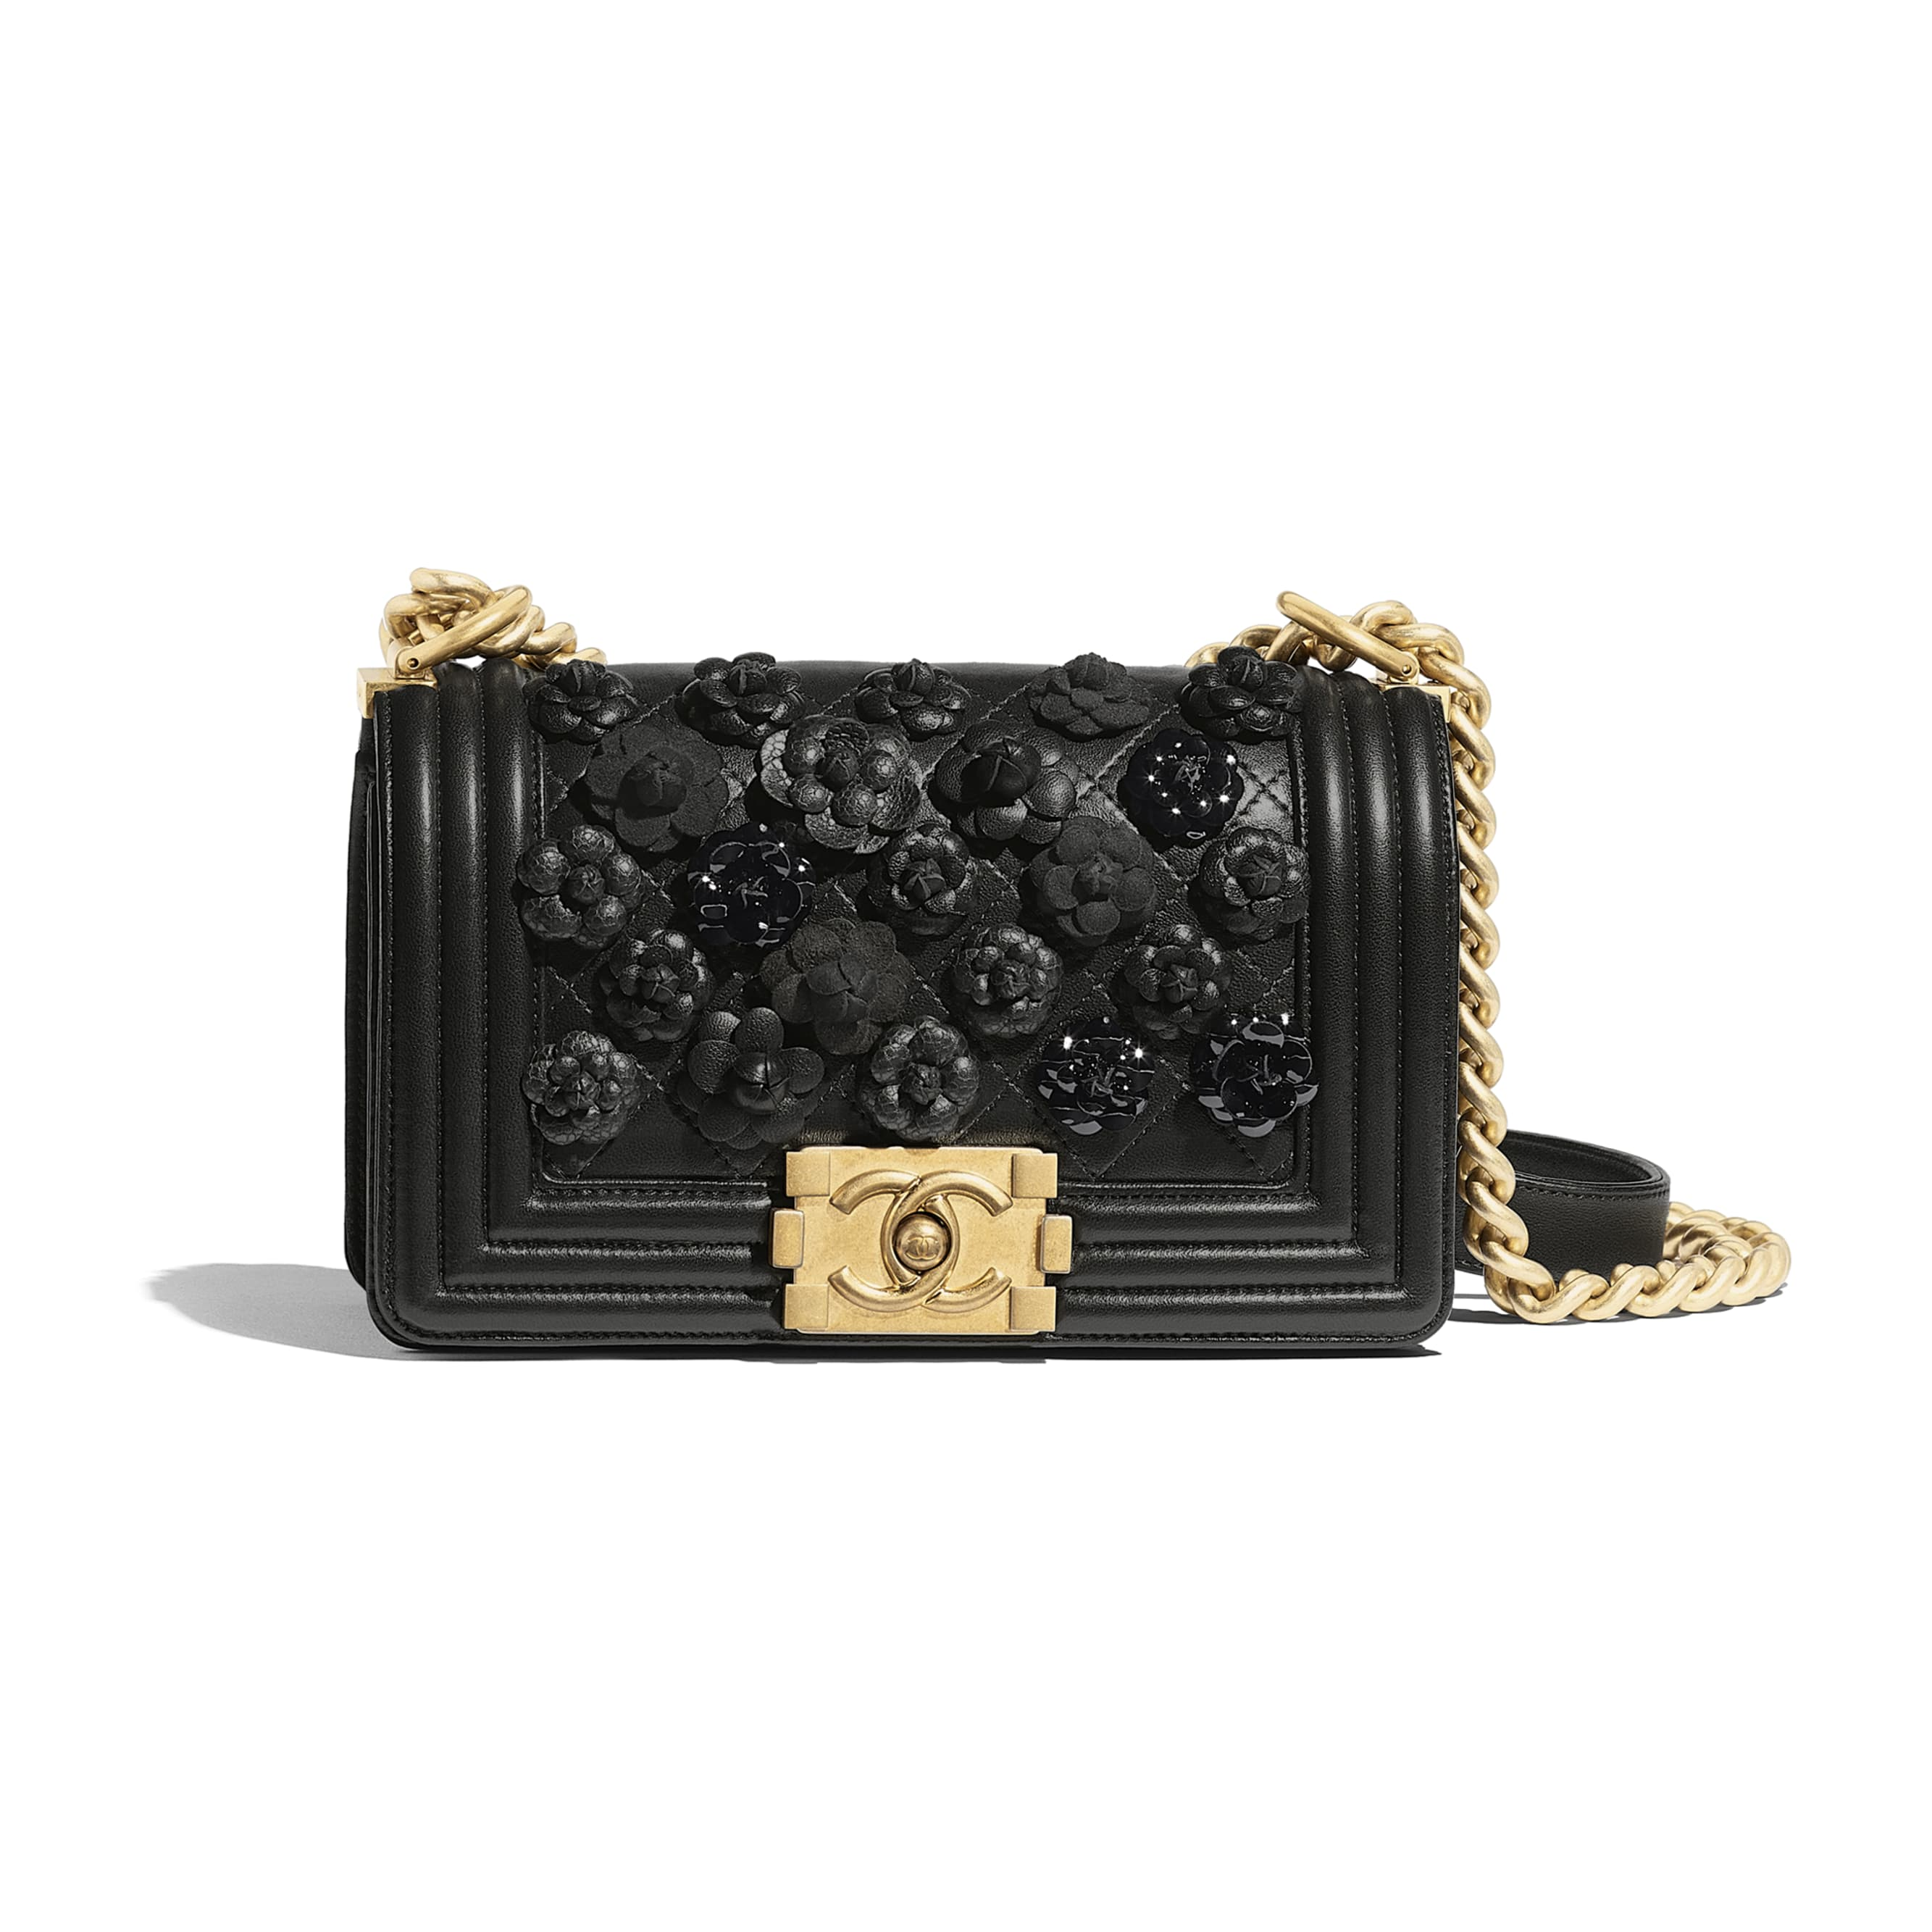 51d39759a361 Small BOY CHANEL Handbag - Black - Embroidered Lambskin   Gold-Tone Metal -  Default .